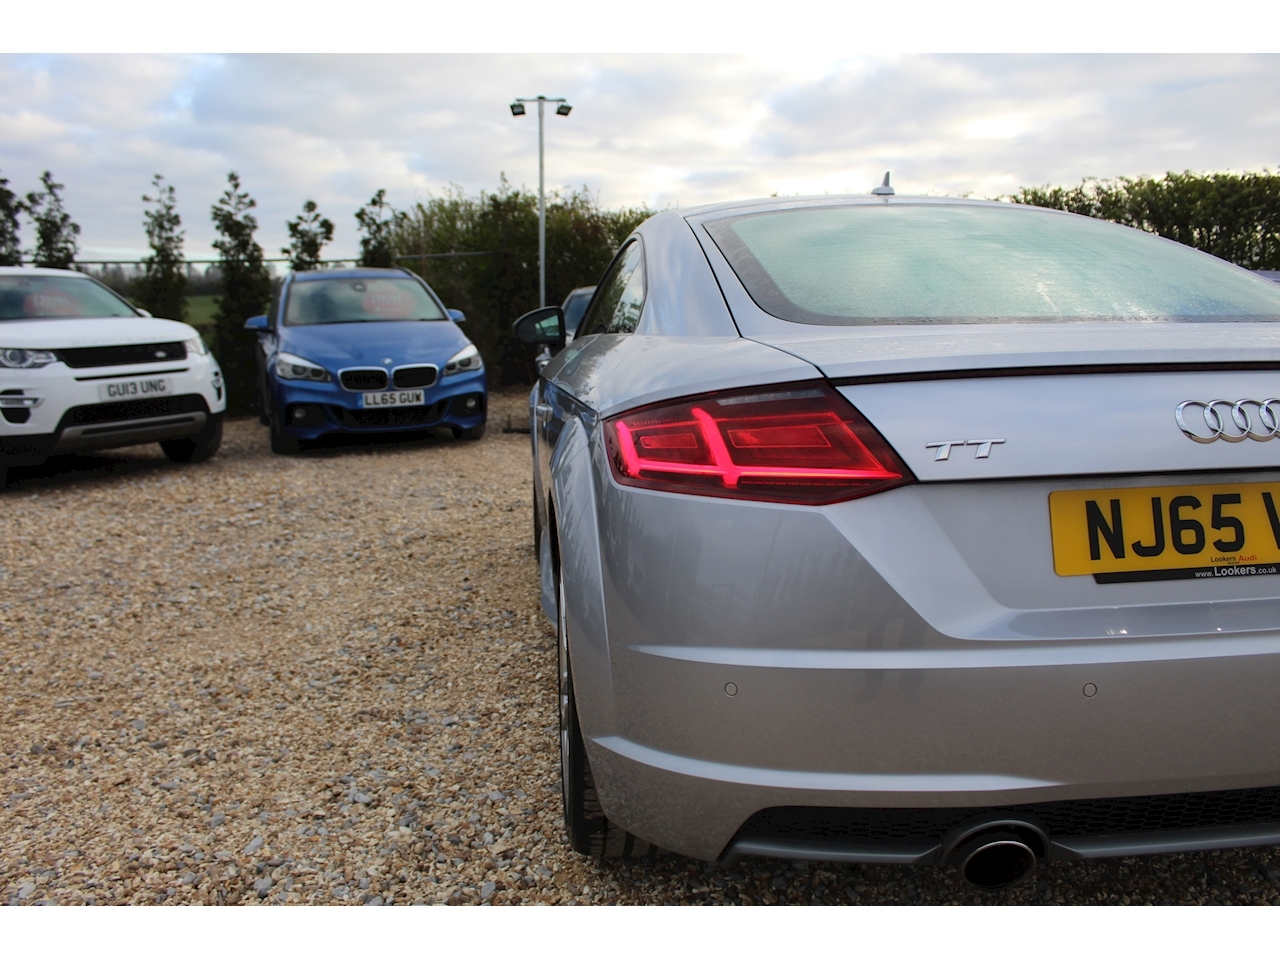 Audi Tt Tdi Ultra S Line Coupe 2.0 Manual Diesel